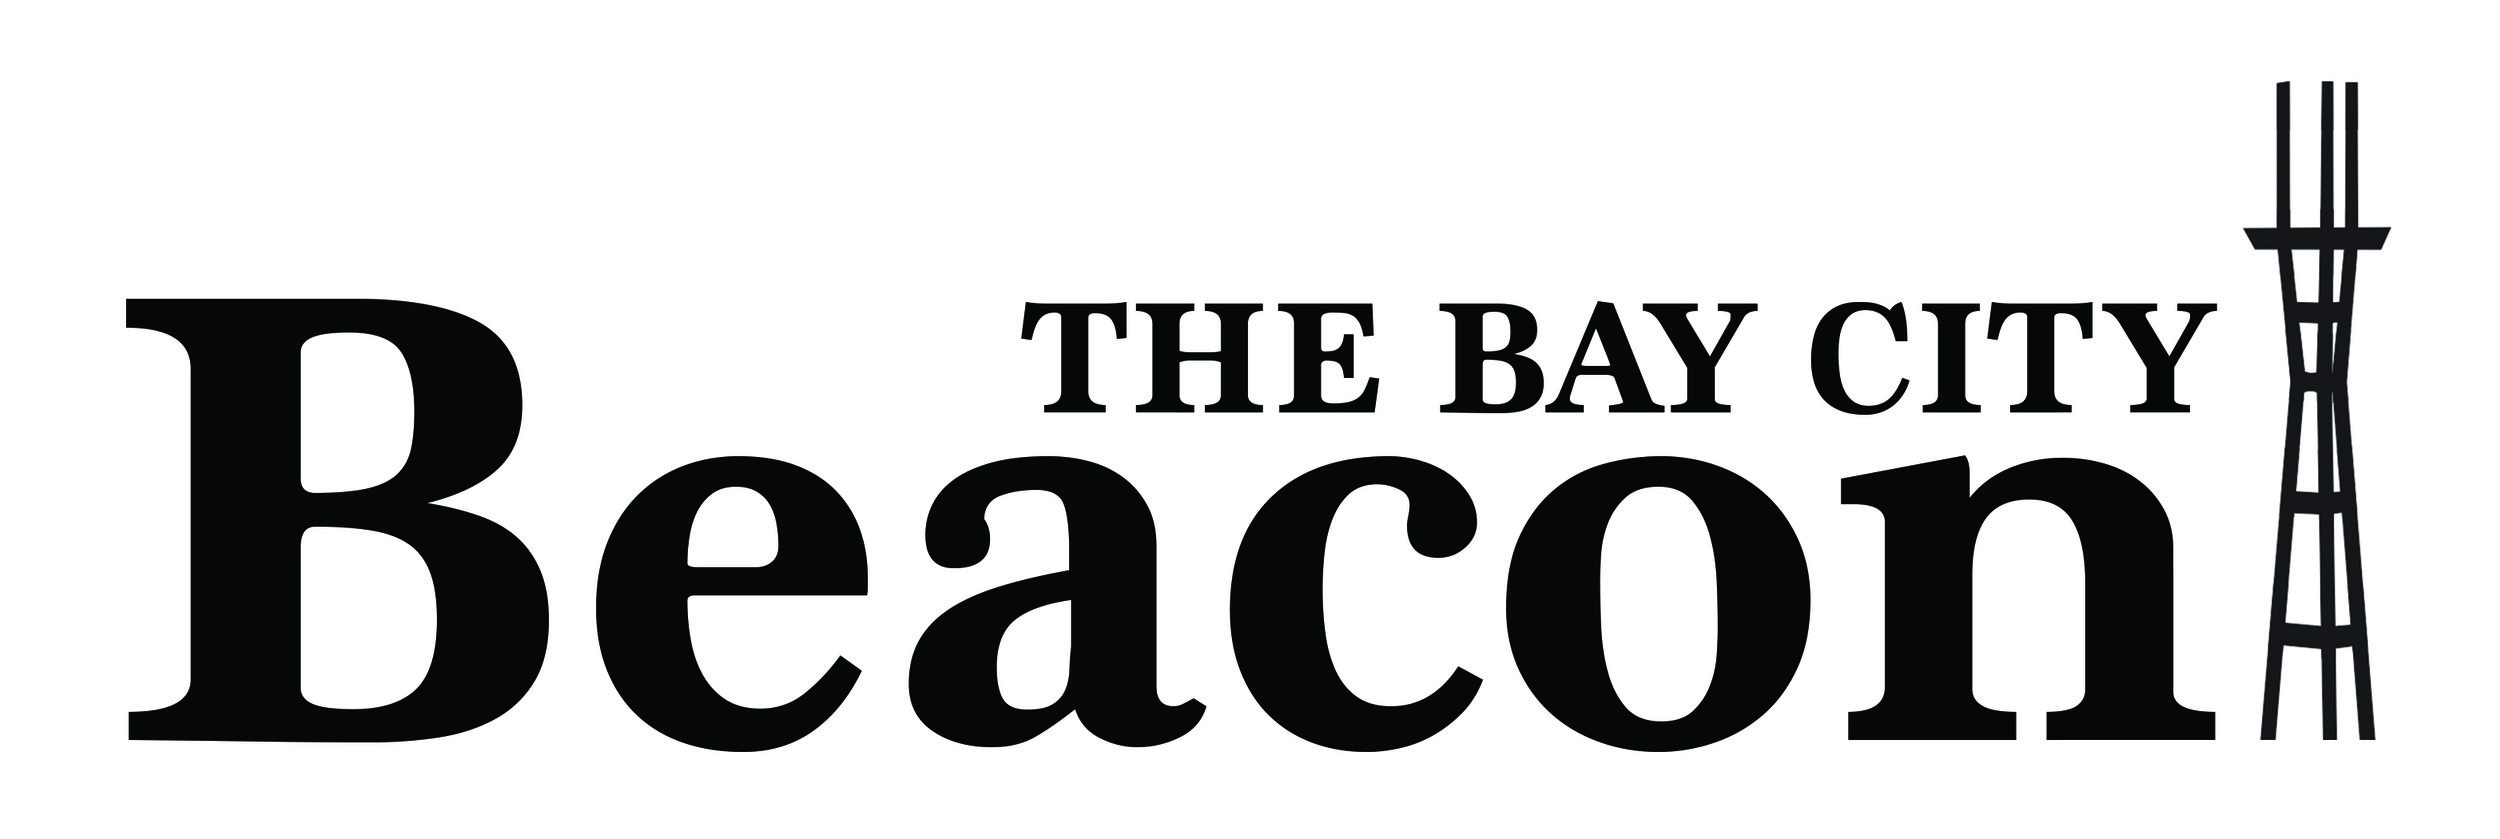 Topical Cannabis: Lessons for 2019 | The Bay City . Beacon | January 28, 2019